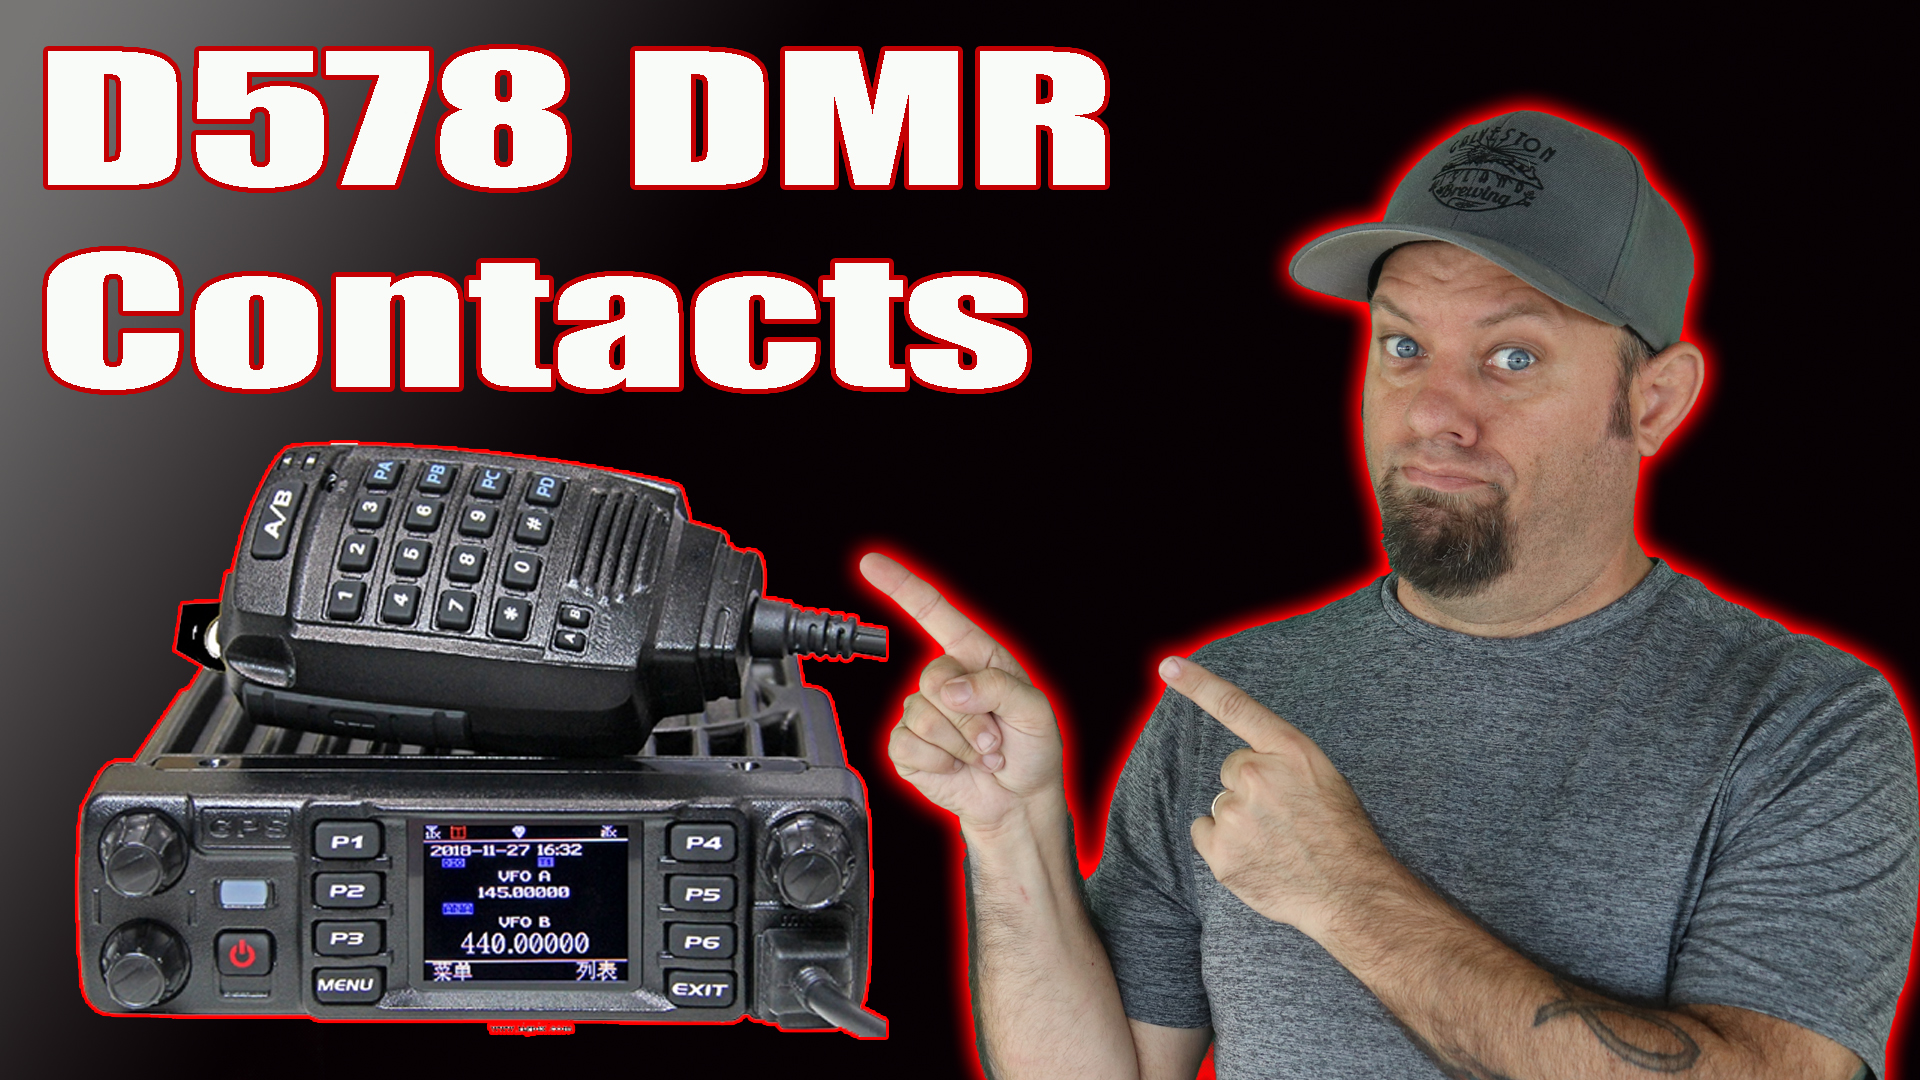 Episode 301: Anytone D578 Loading Contacts